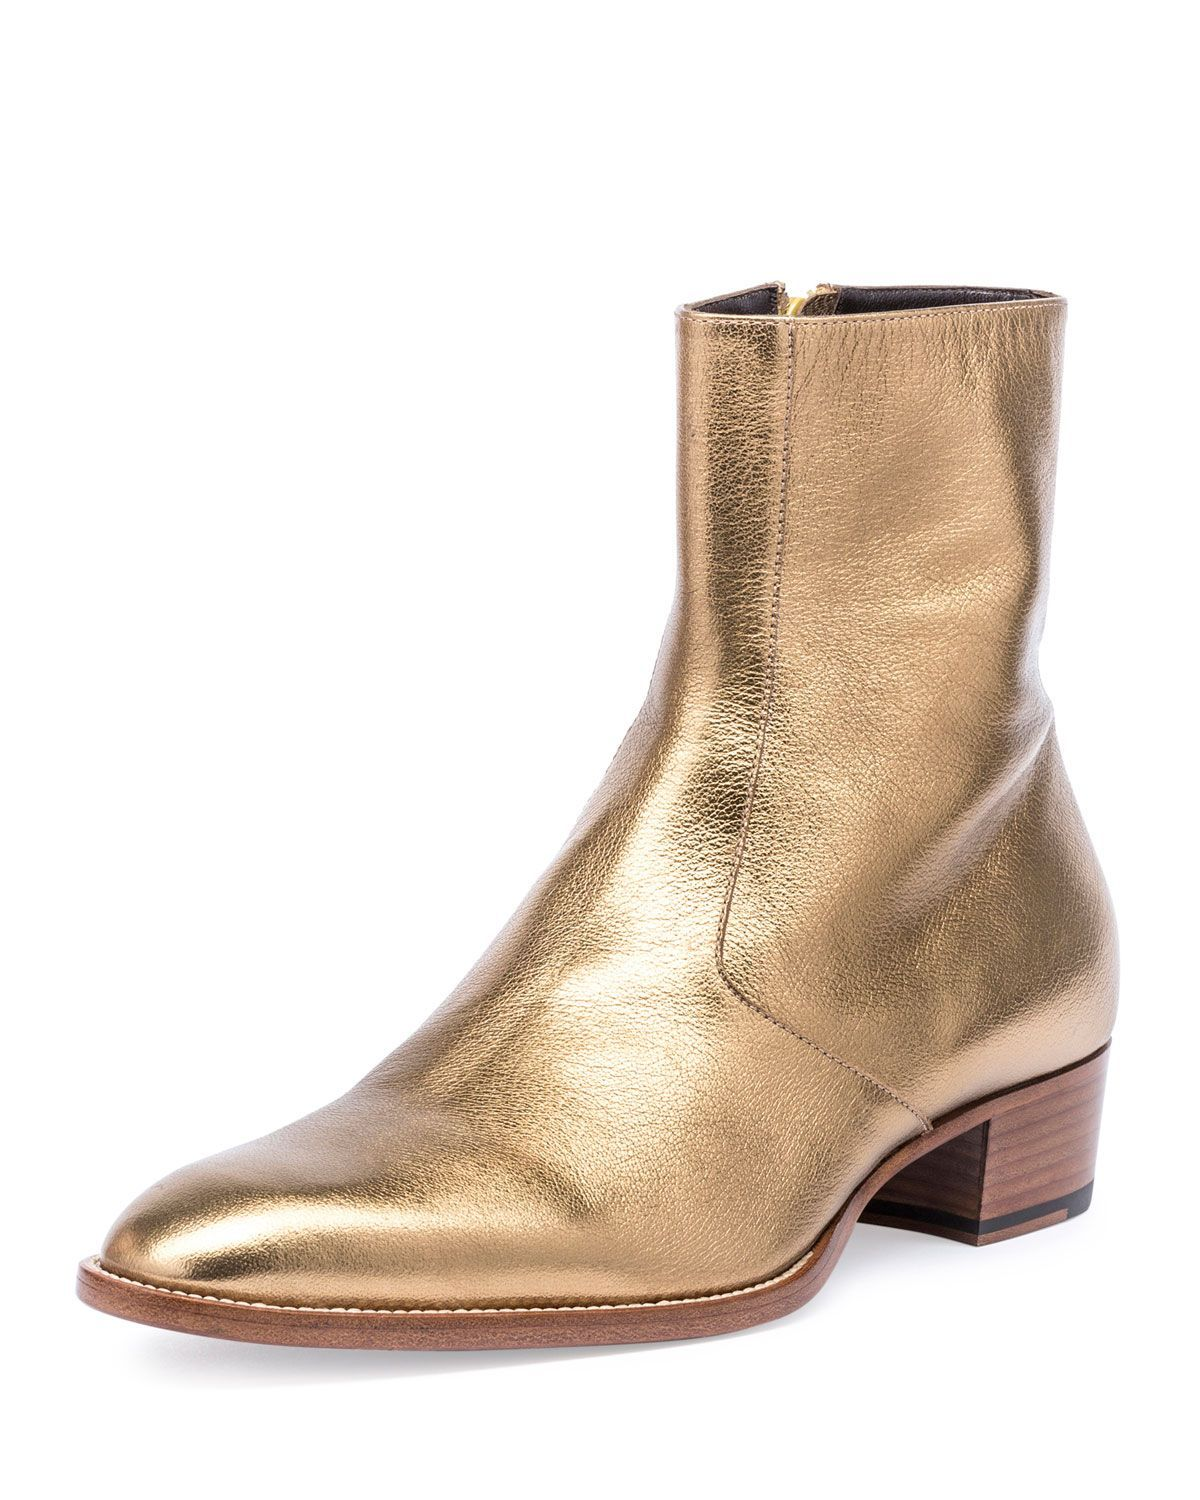 957e3e005e3 Wyatt 40mm Men's Metallic Leather Ankle Boot, Gold | Dress shoes in ...